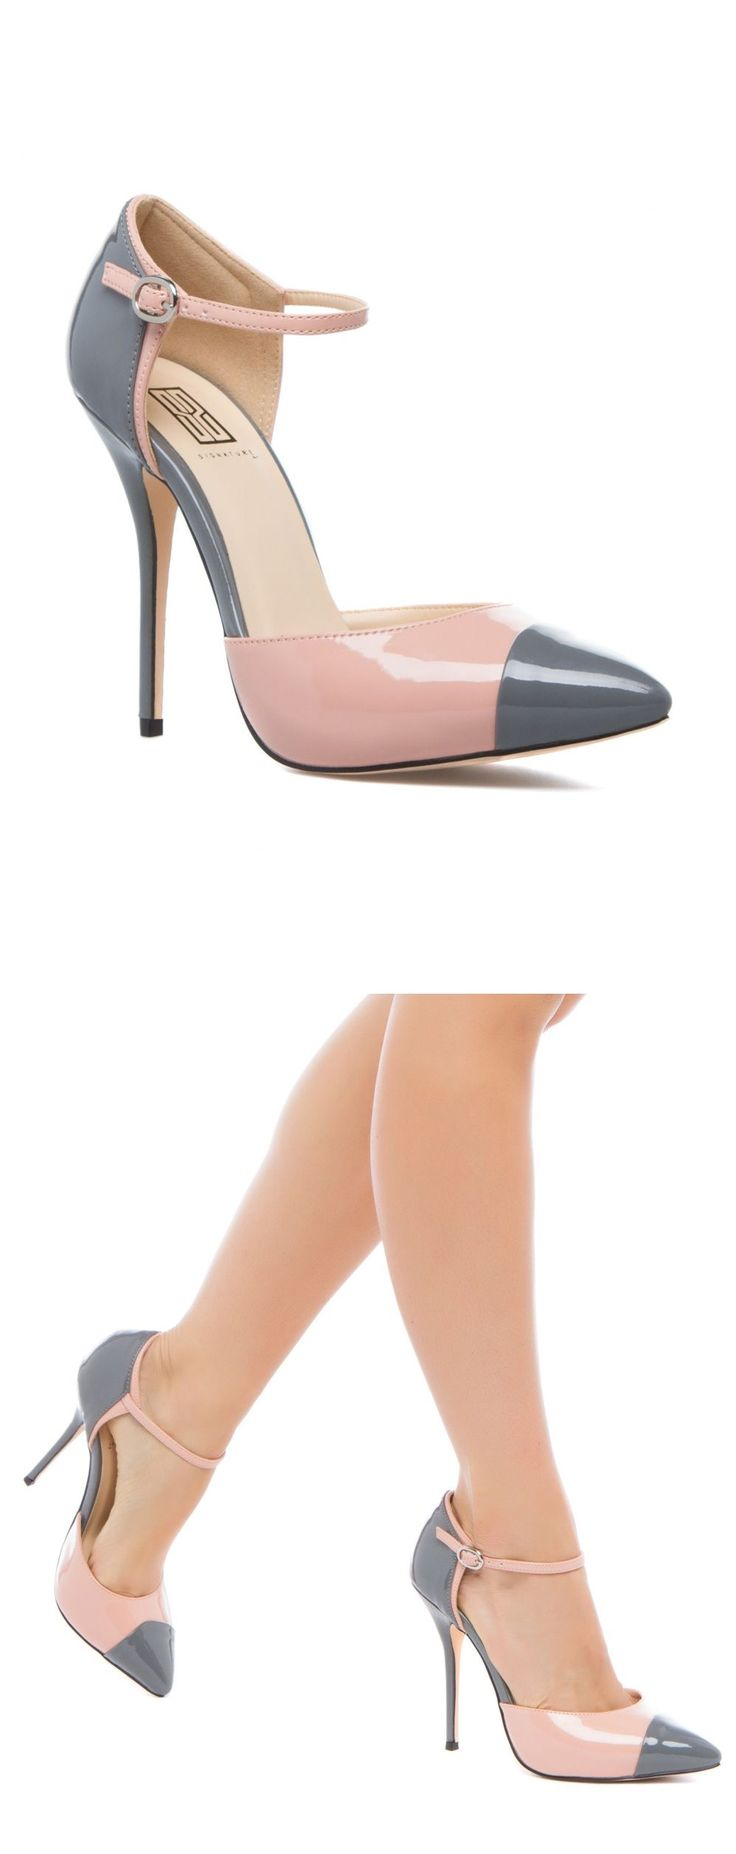 276728 Best Stunning Women S Shoes Images On Pinterest